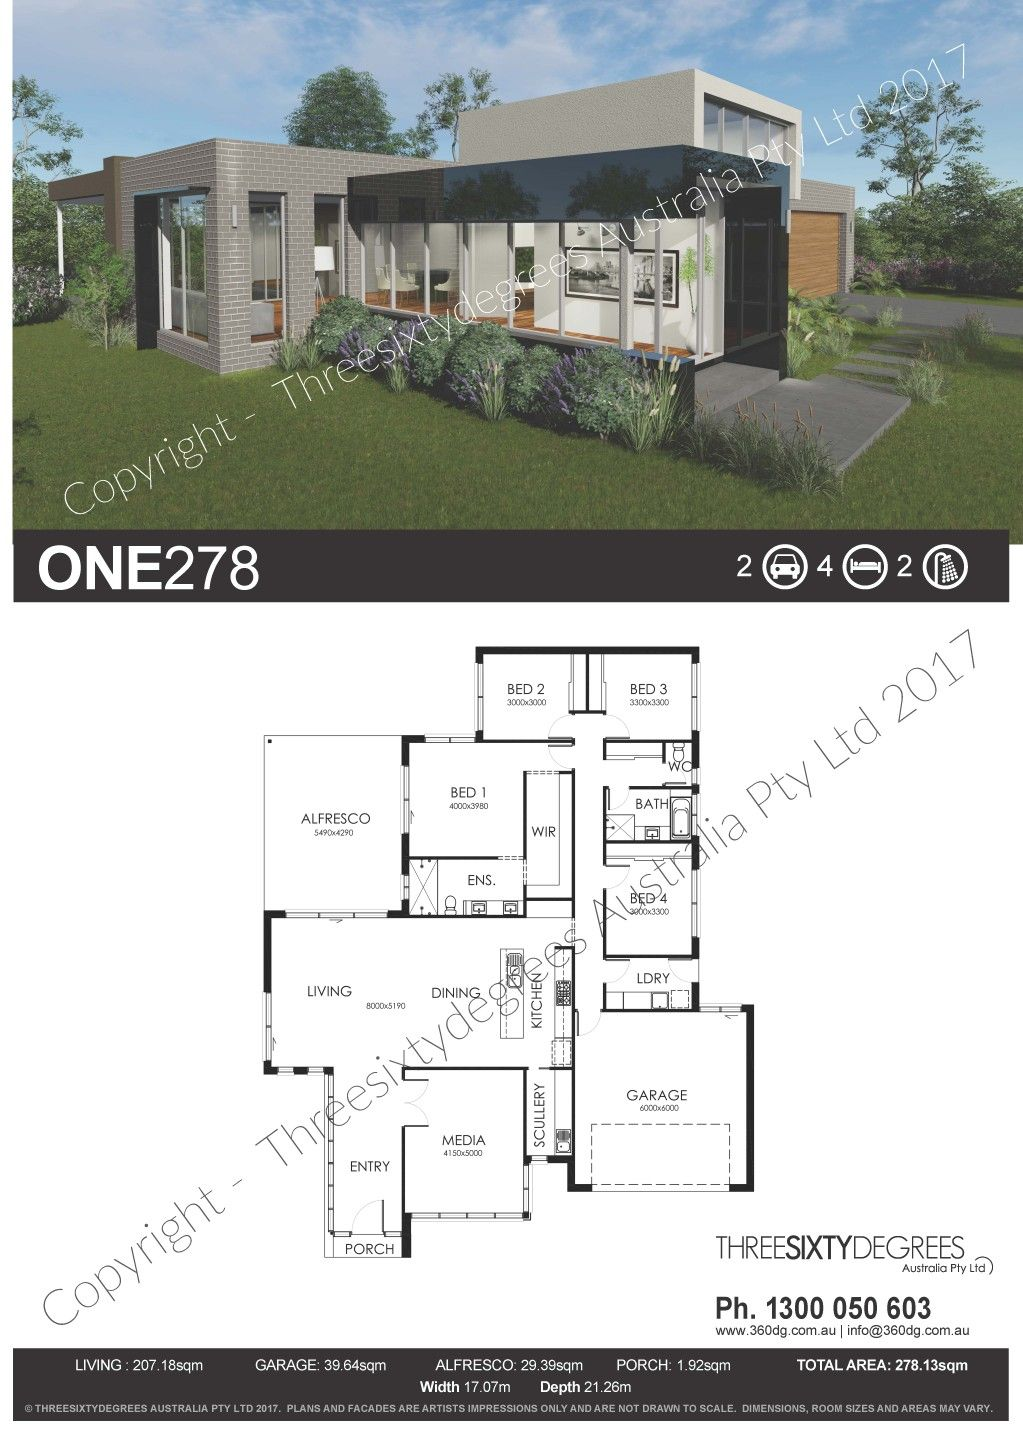 One Of Our Most Popular House Designs For Sale View And Purchase It Hundreds